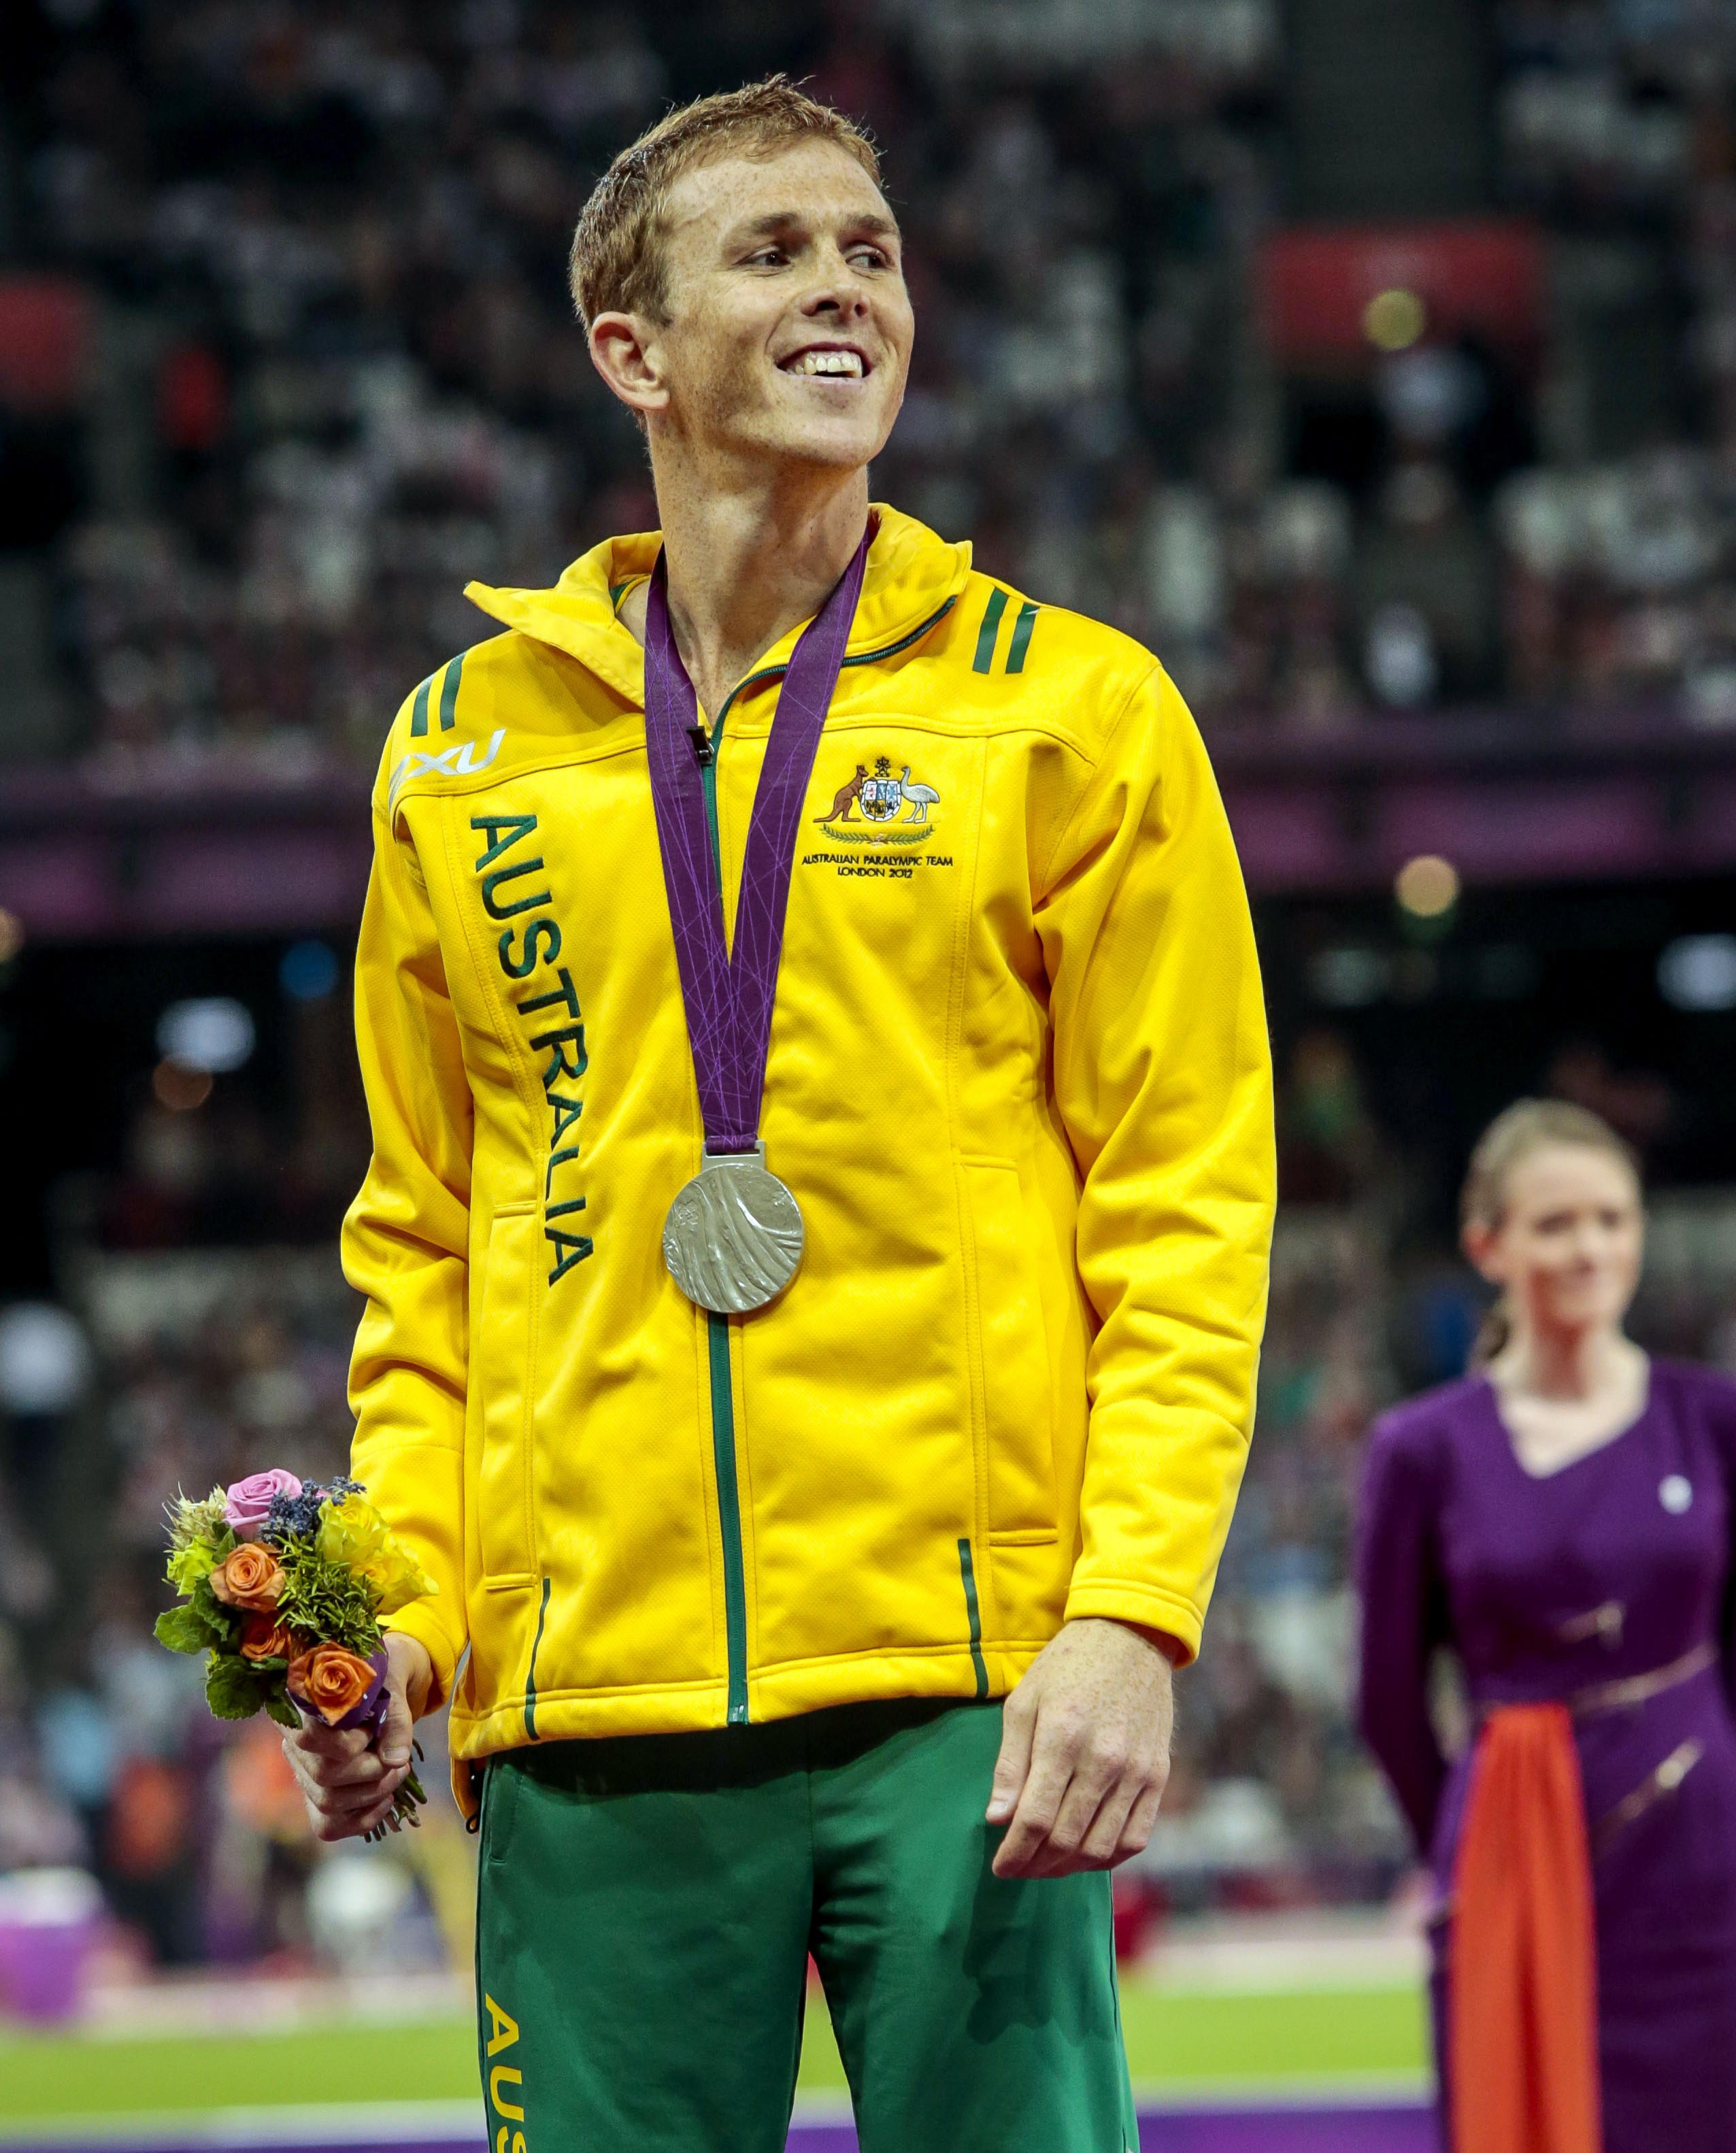 Funding for Paralympians heading to Rio